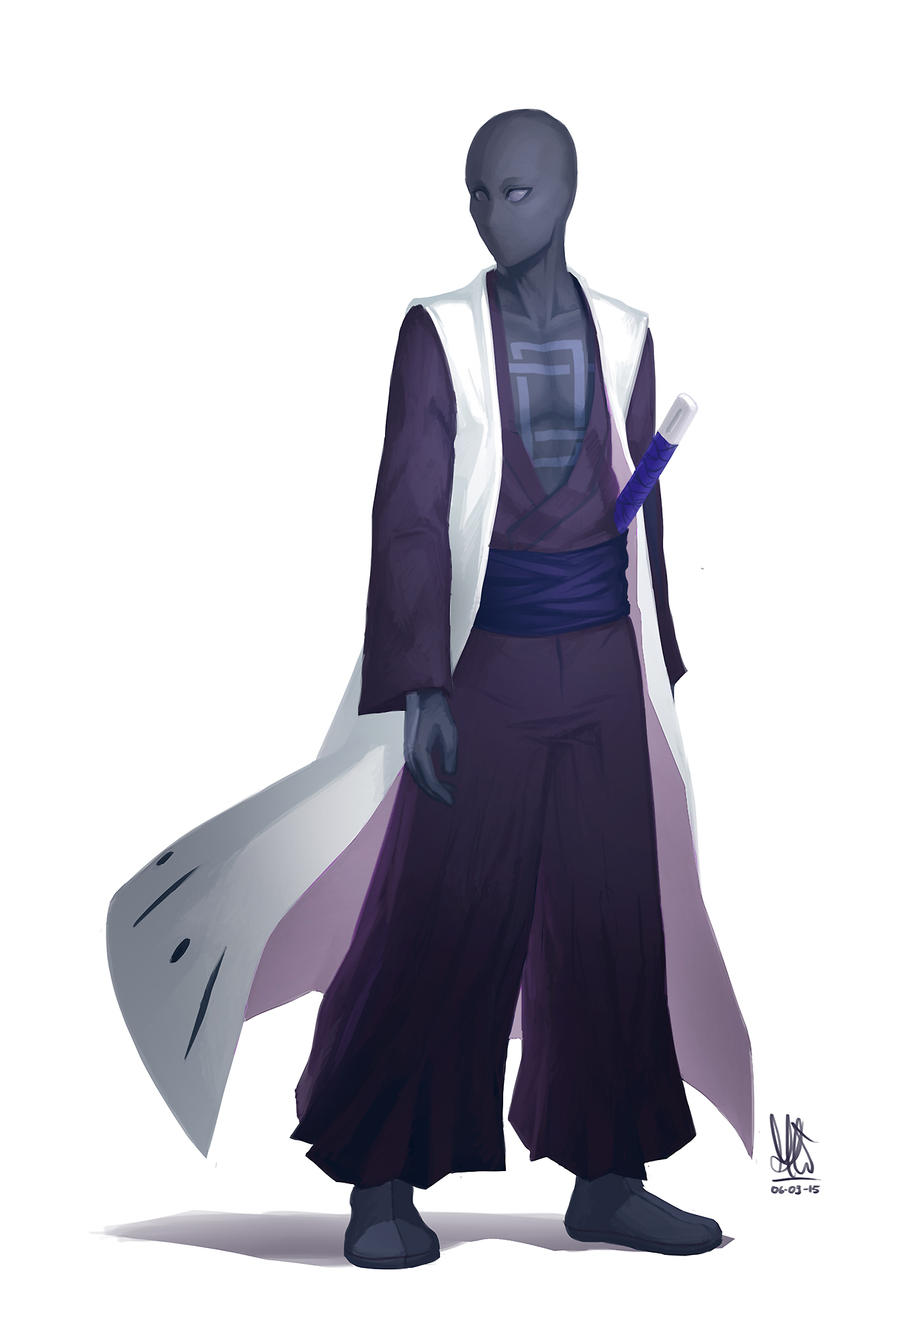 [Ficha de Personagem] Bishamon Van Der Maat Kumo_tetsu__master_of_stealth_by_oggo171-d98mu6x